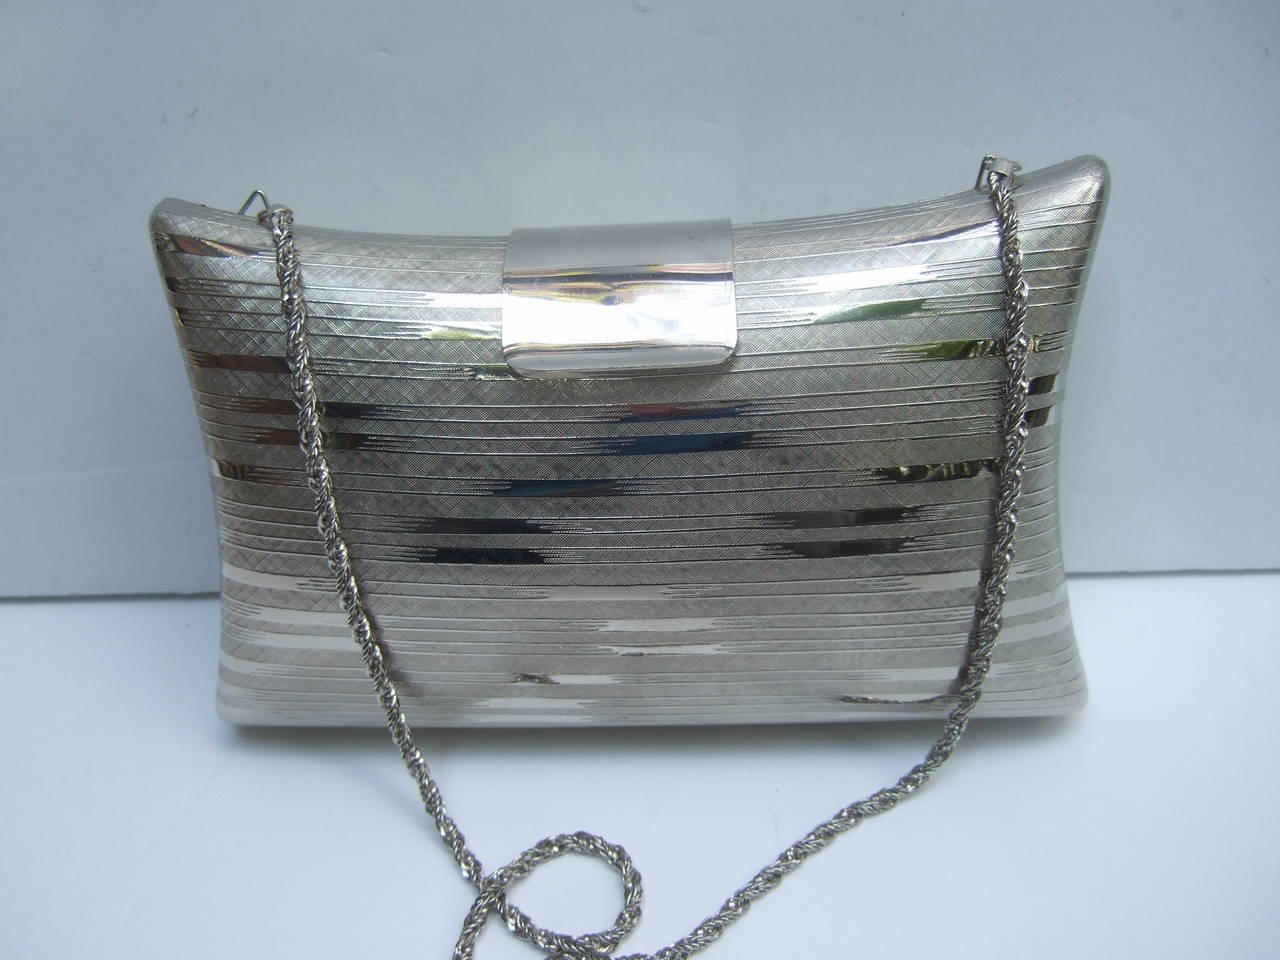 Saks Fifth Avenue Silver Metal Evening Bag Made In Italy C